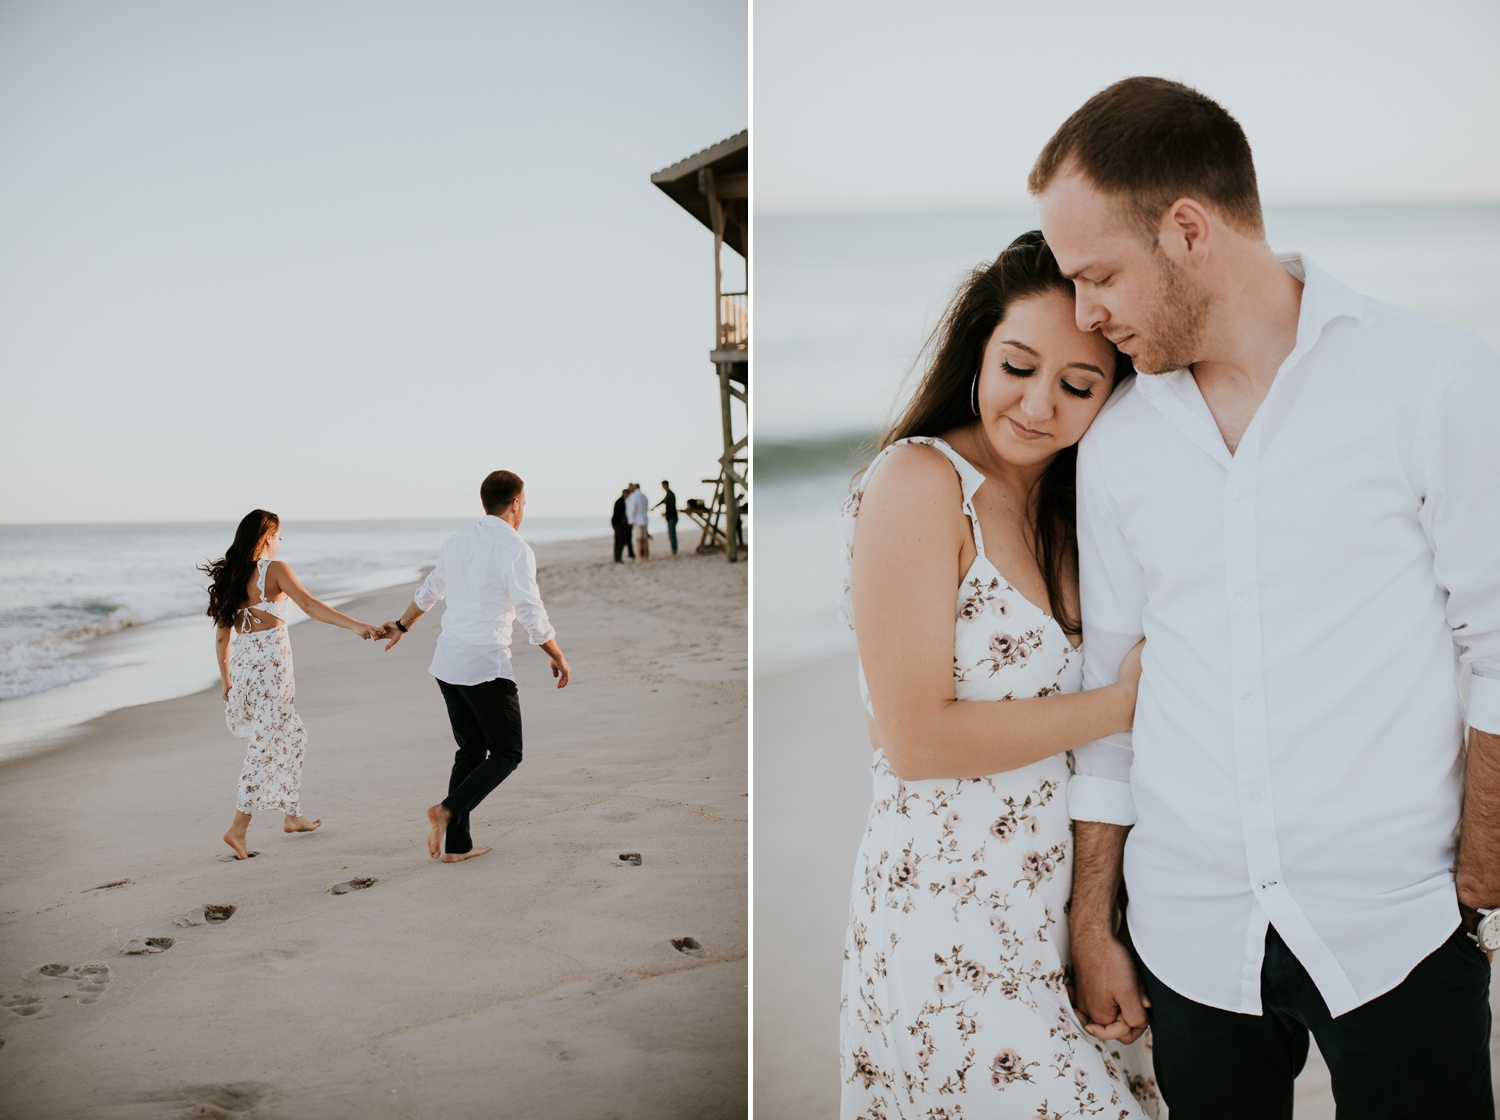 ho-hum-beach-boat-ride-engagement-photography-bellport-new-york 22.jpg